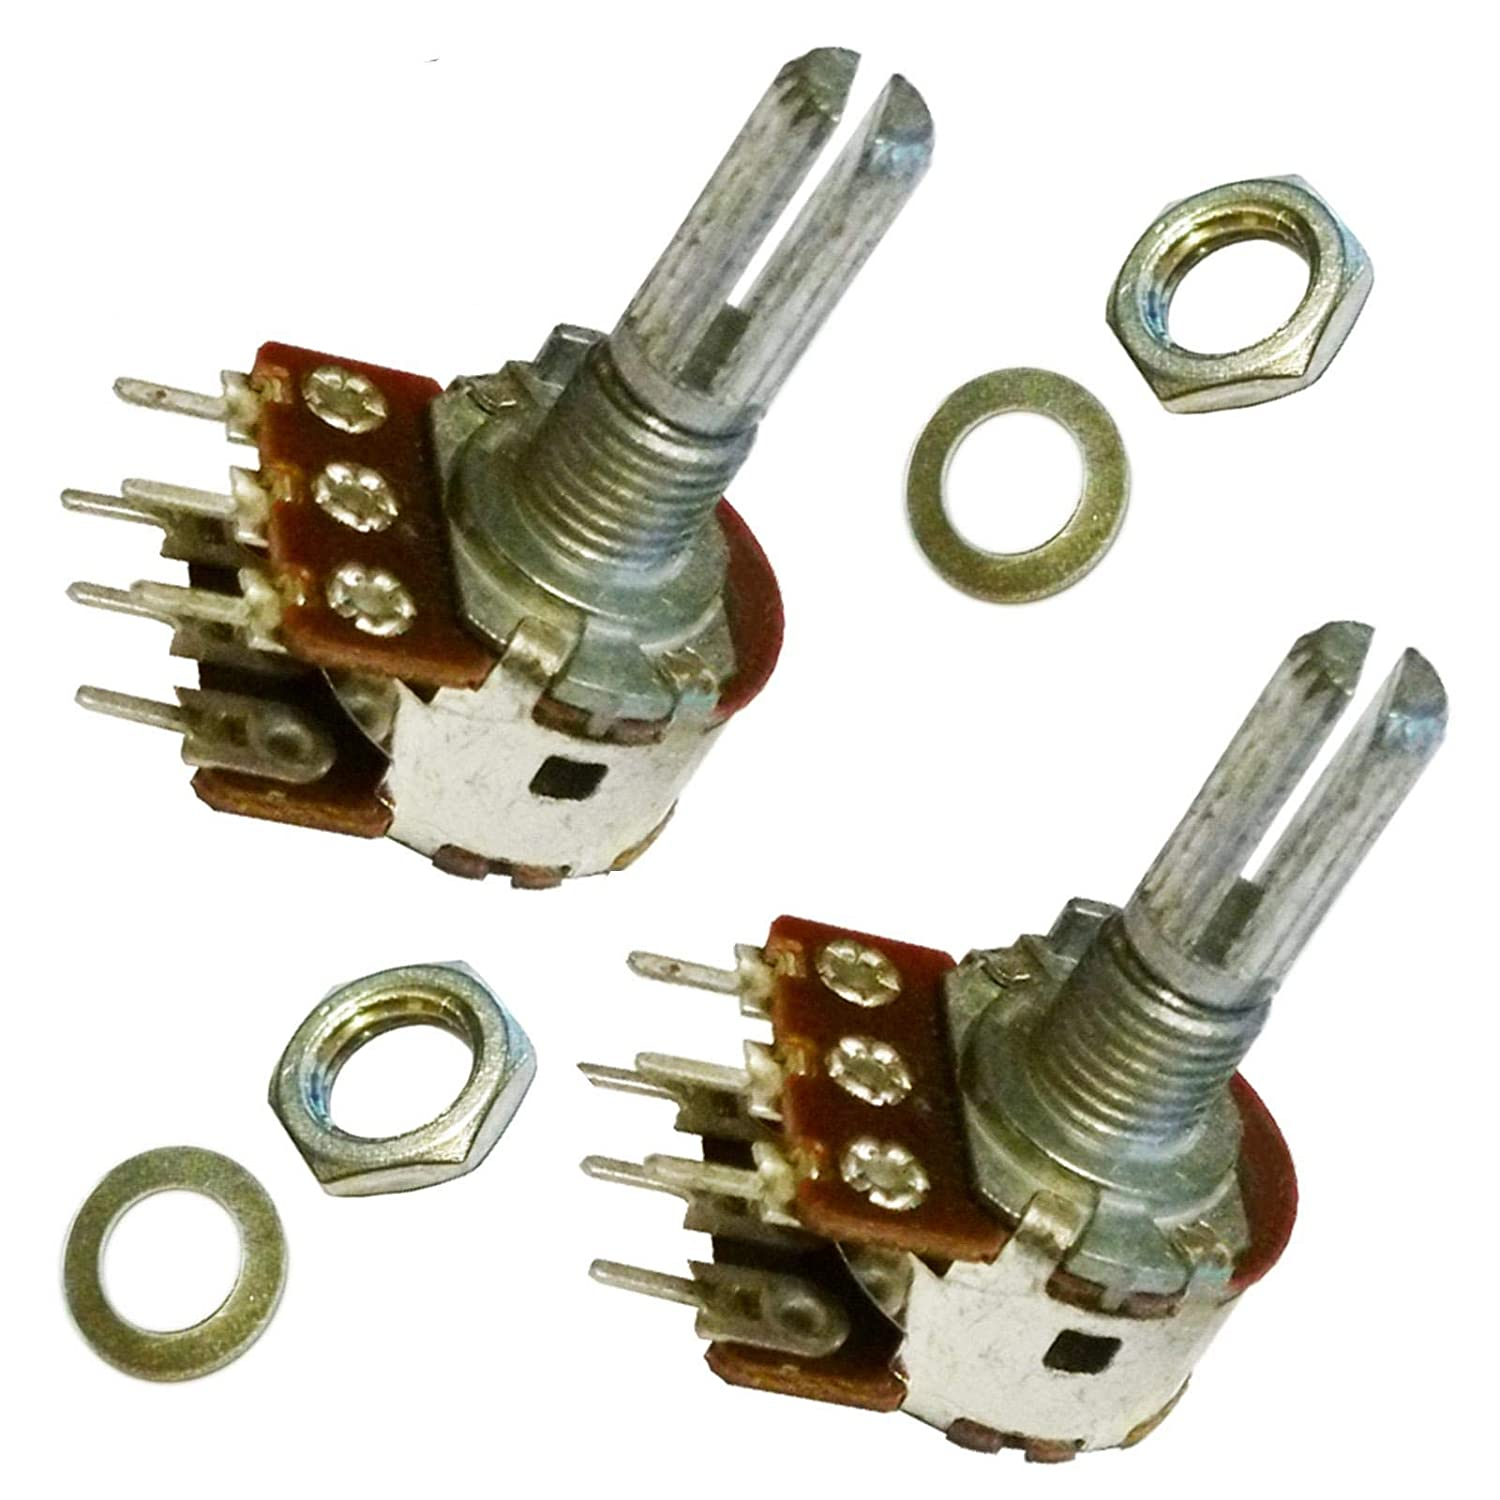 2x B20K ohm 20K ohm B203 Dual Stereo Linear Lin Knurled Splined Shaft Rotary Potentiometer Pot Shaft:20mm Unbranded/Generic